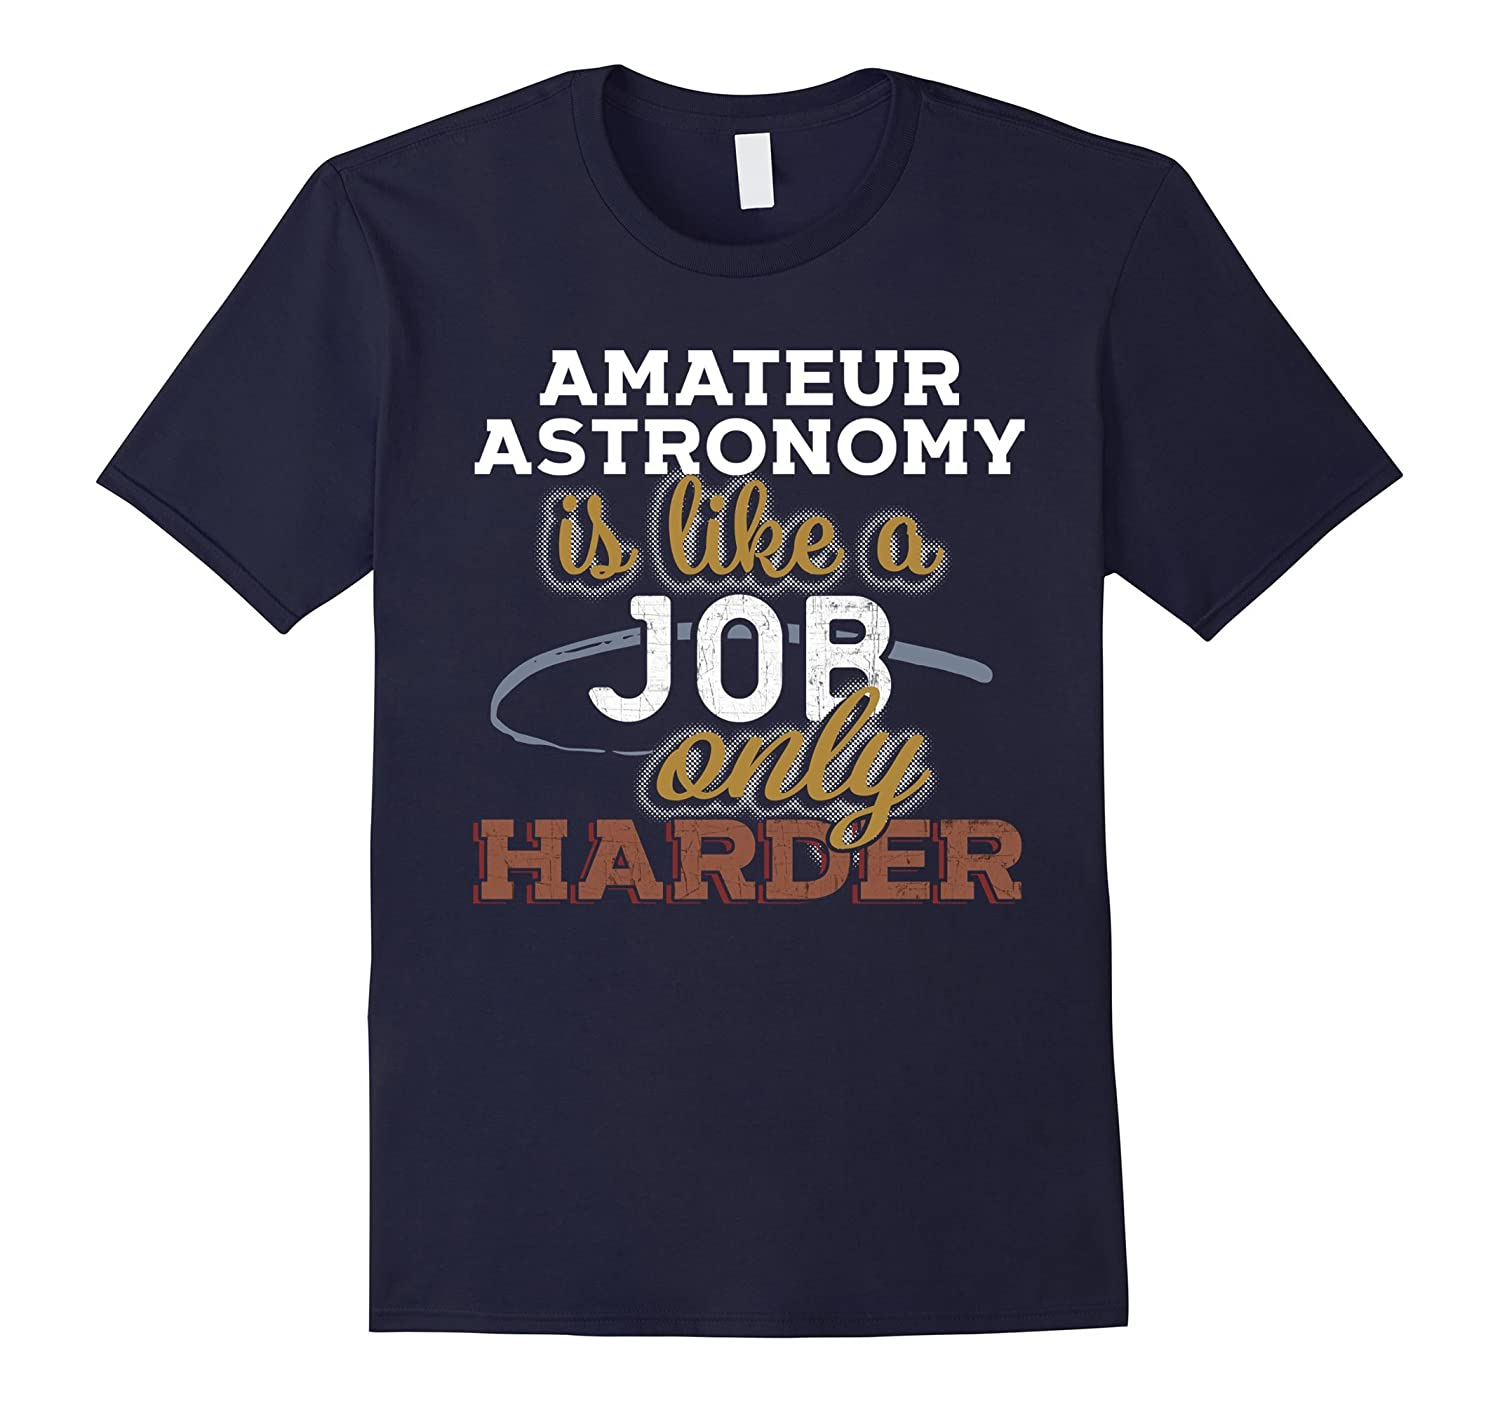 Amateur Astronomy is Just Like a Job Only Harder T Shirt-TJ